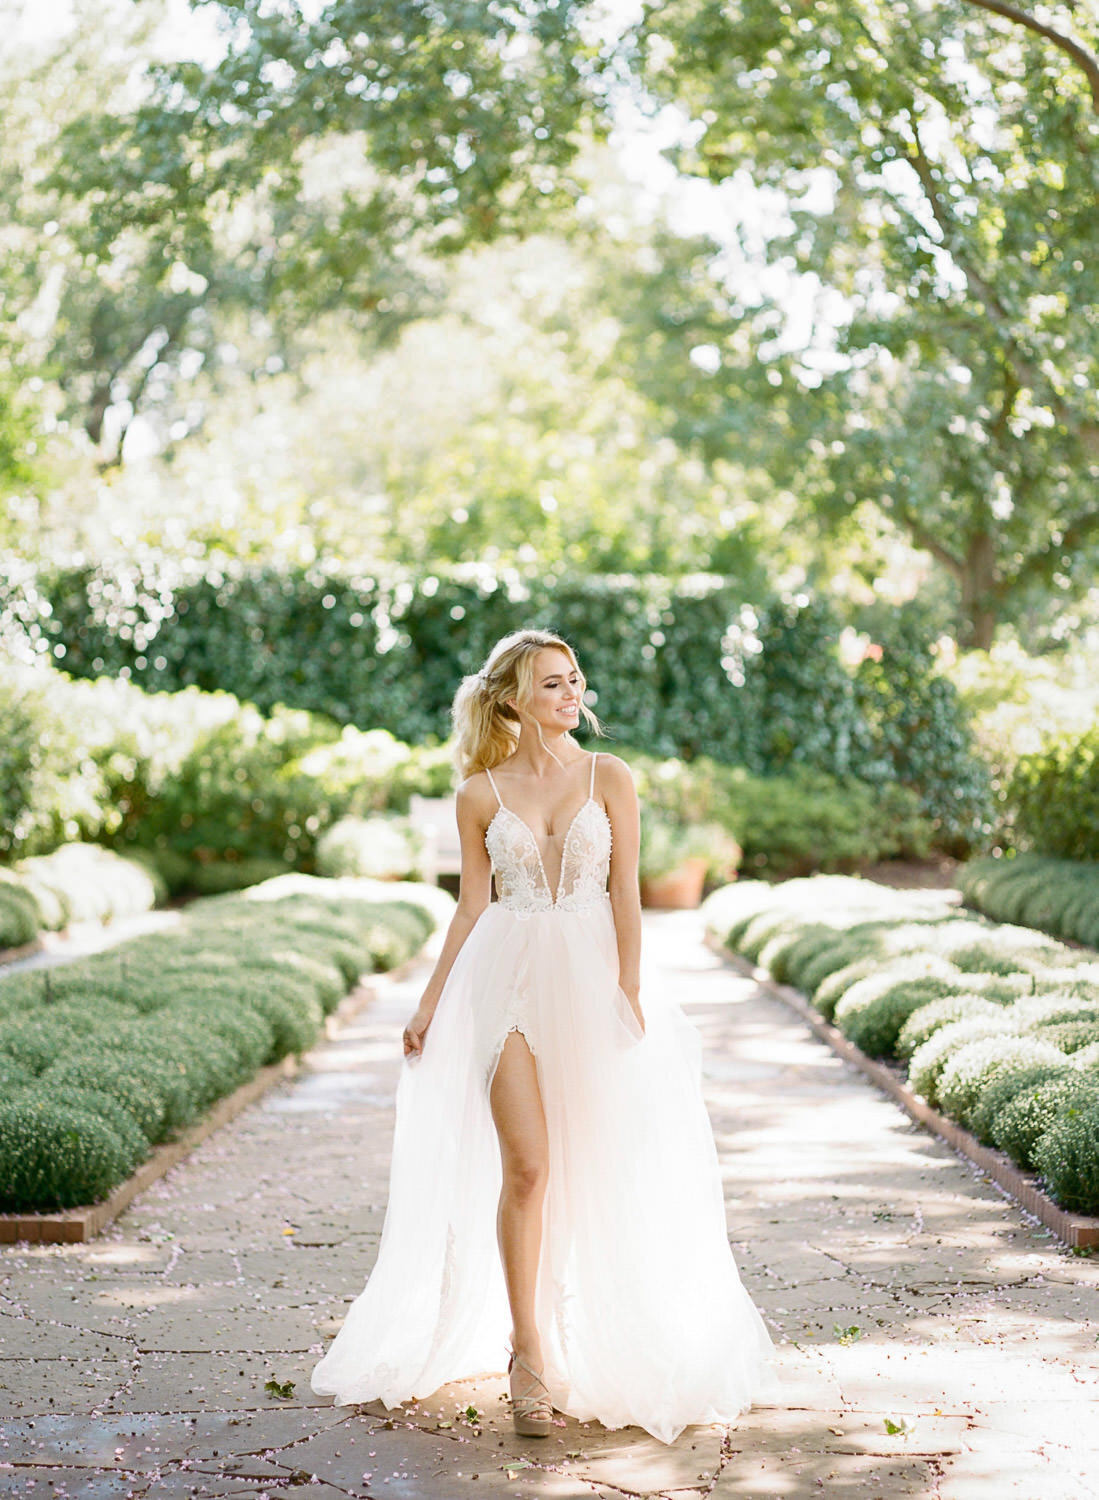 blonde bride in white wedding dress smiling in green garden